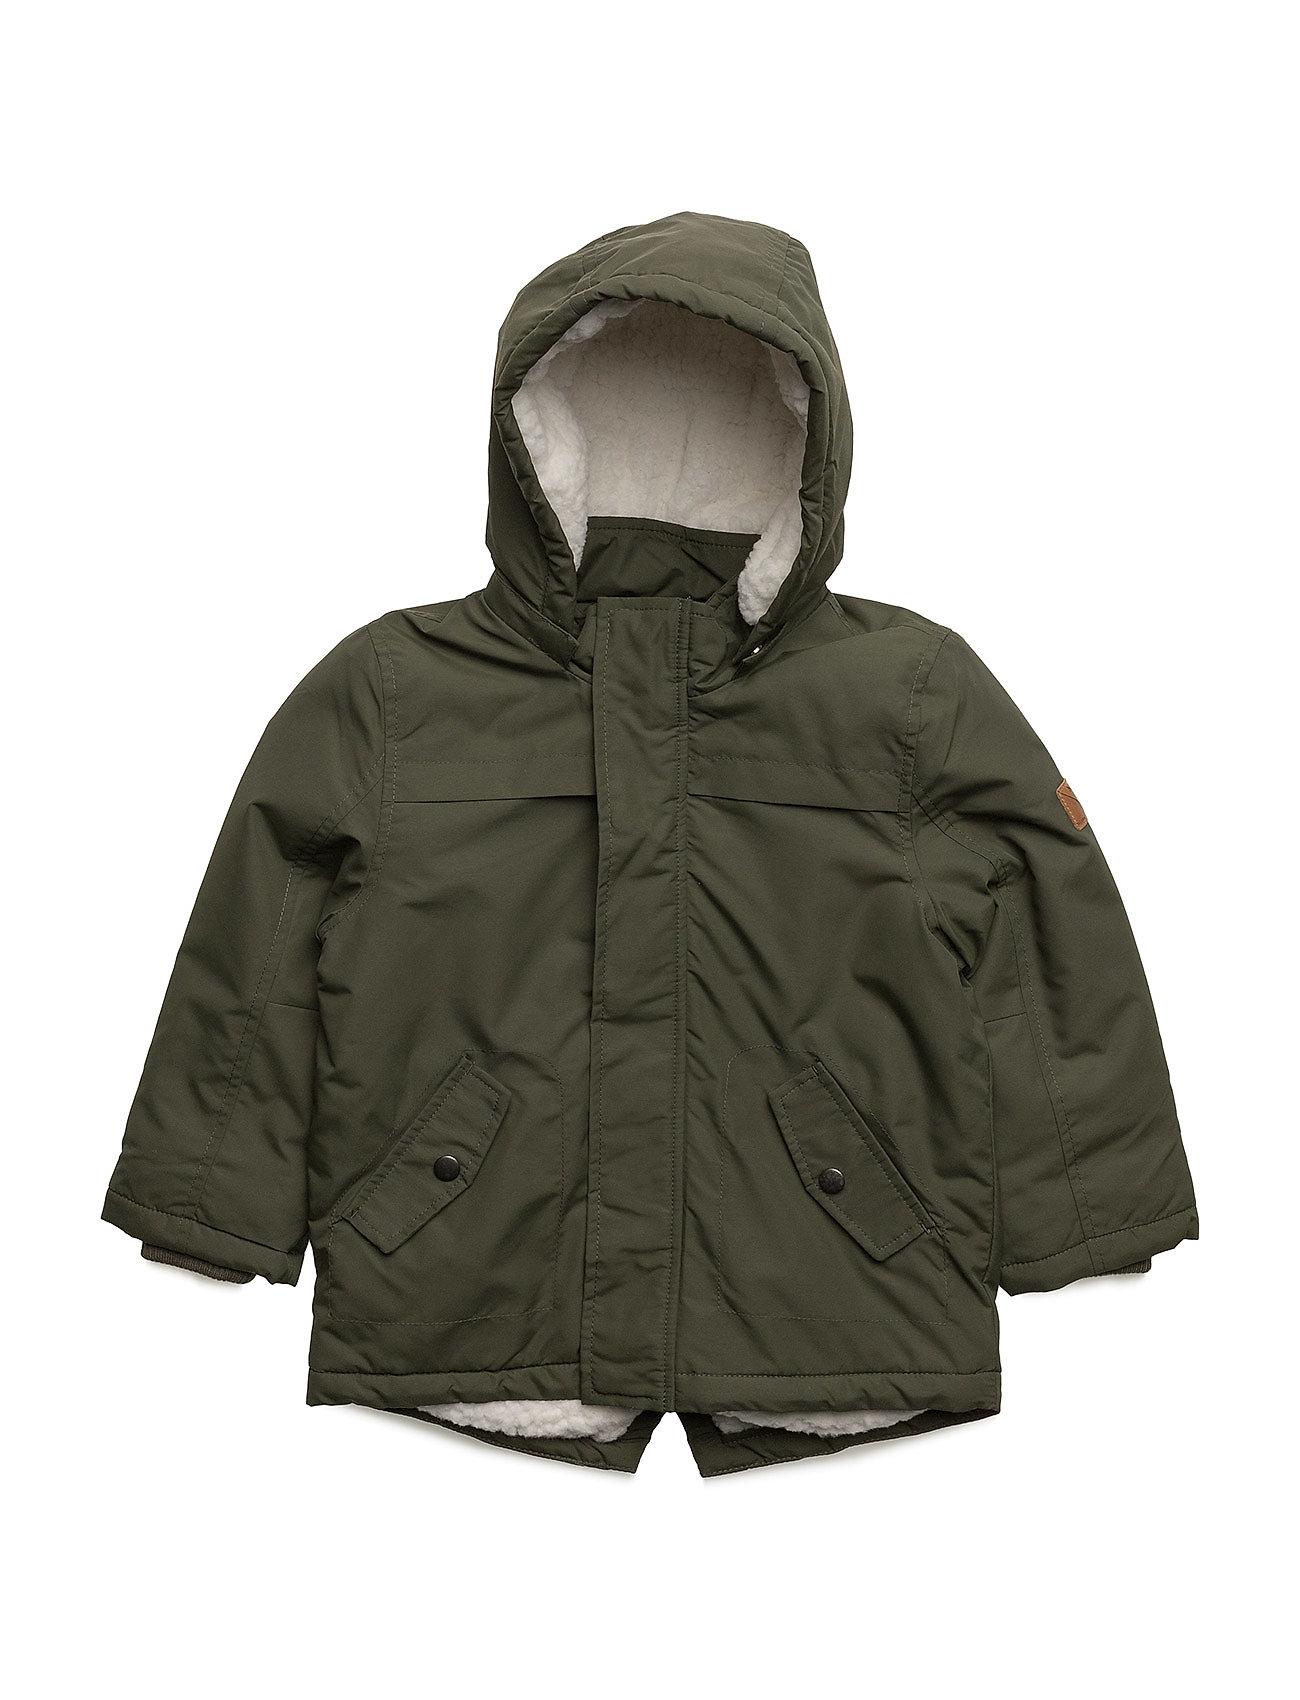 name it Nitmyles parka jacket m mini på boozt.com dk